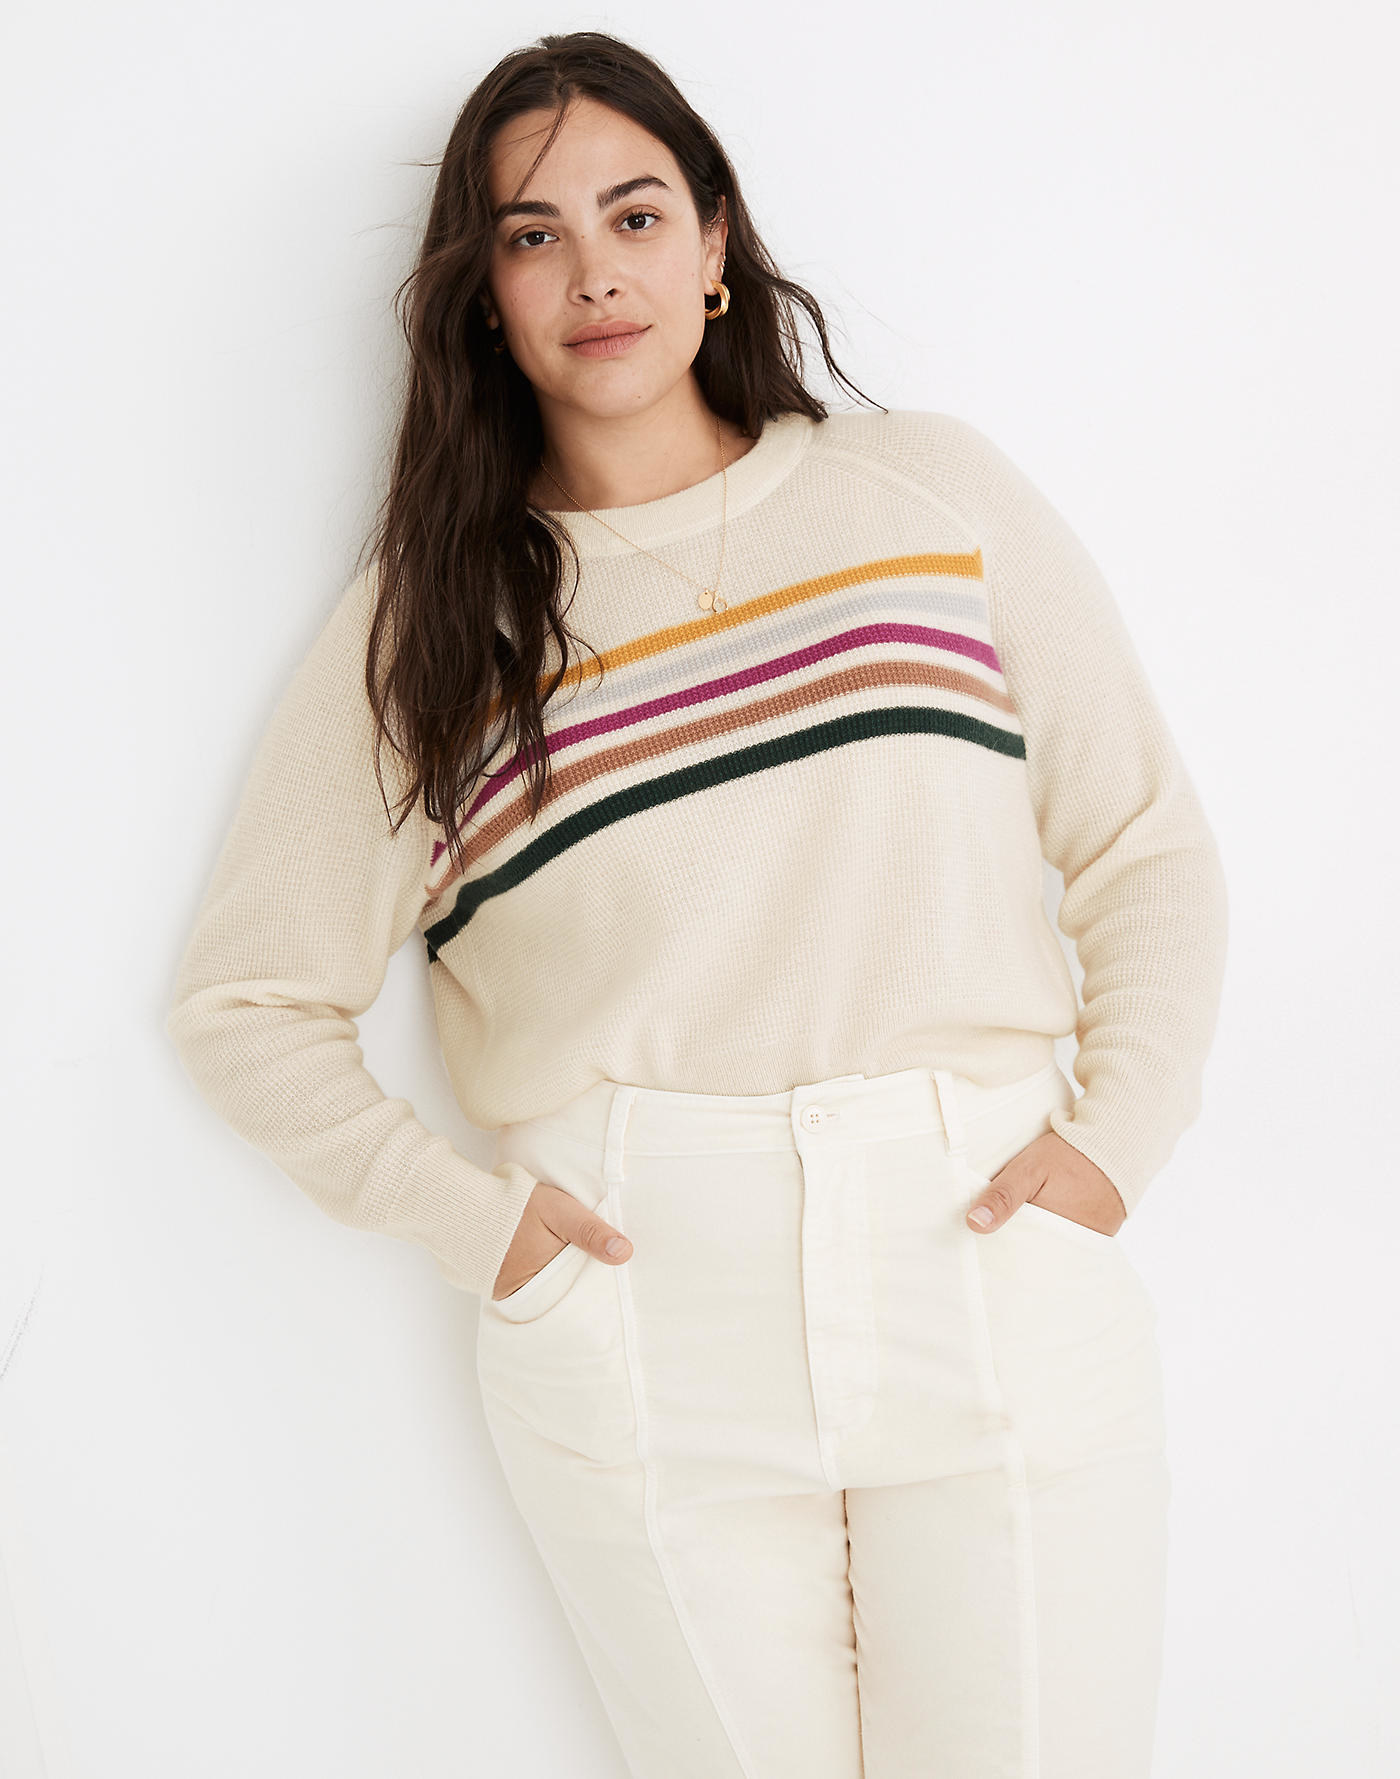 Model wearing a cream sweater with stripes